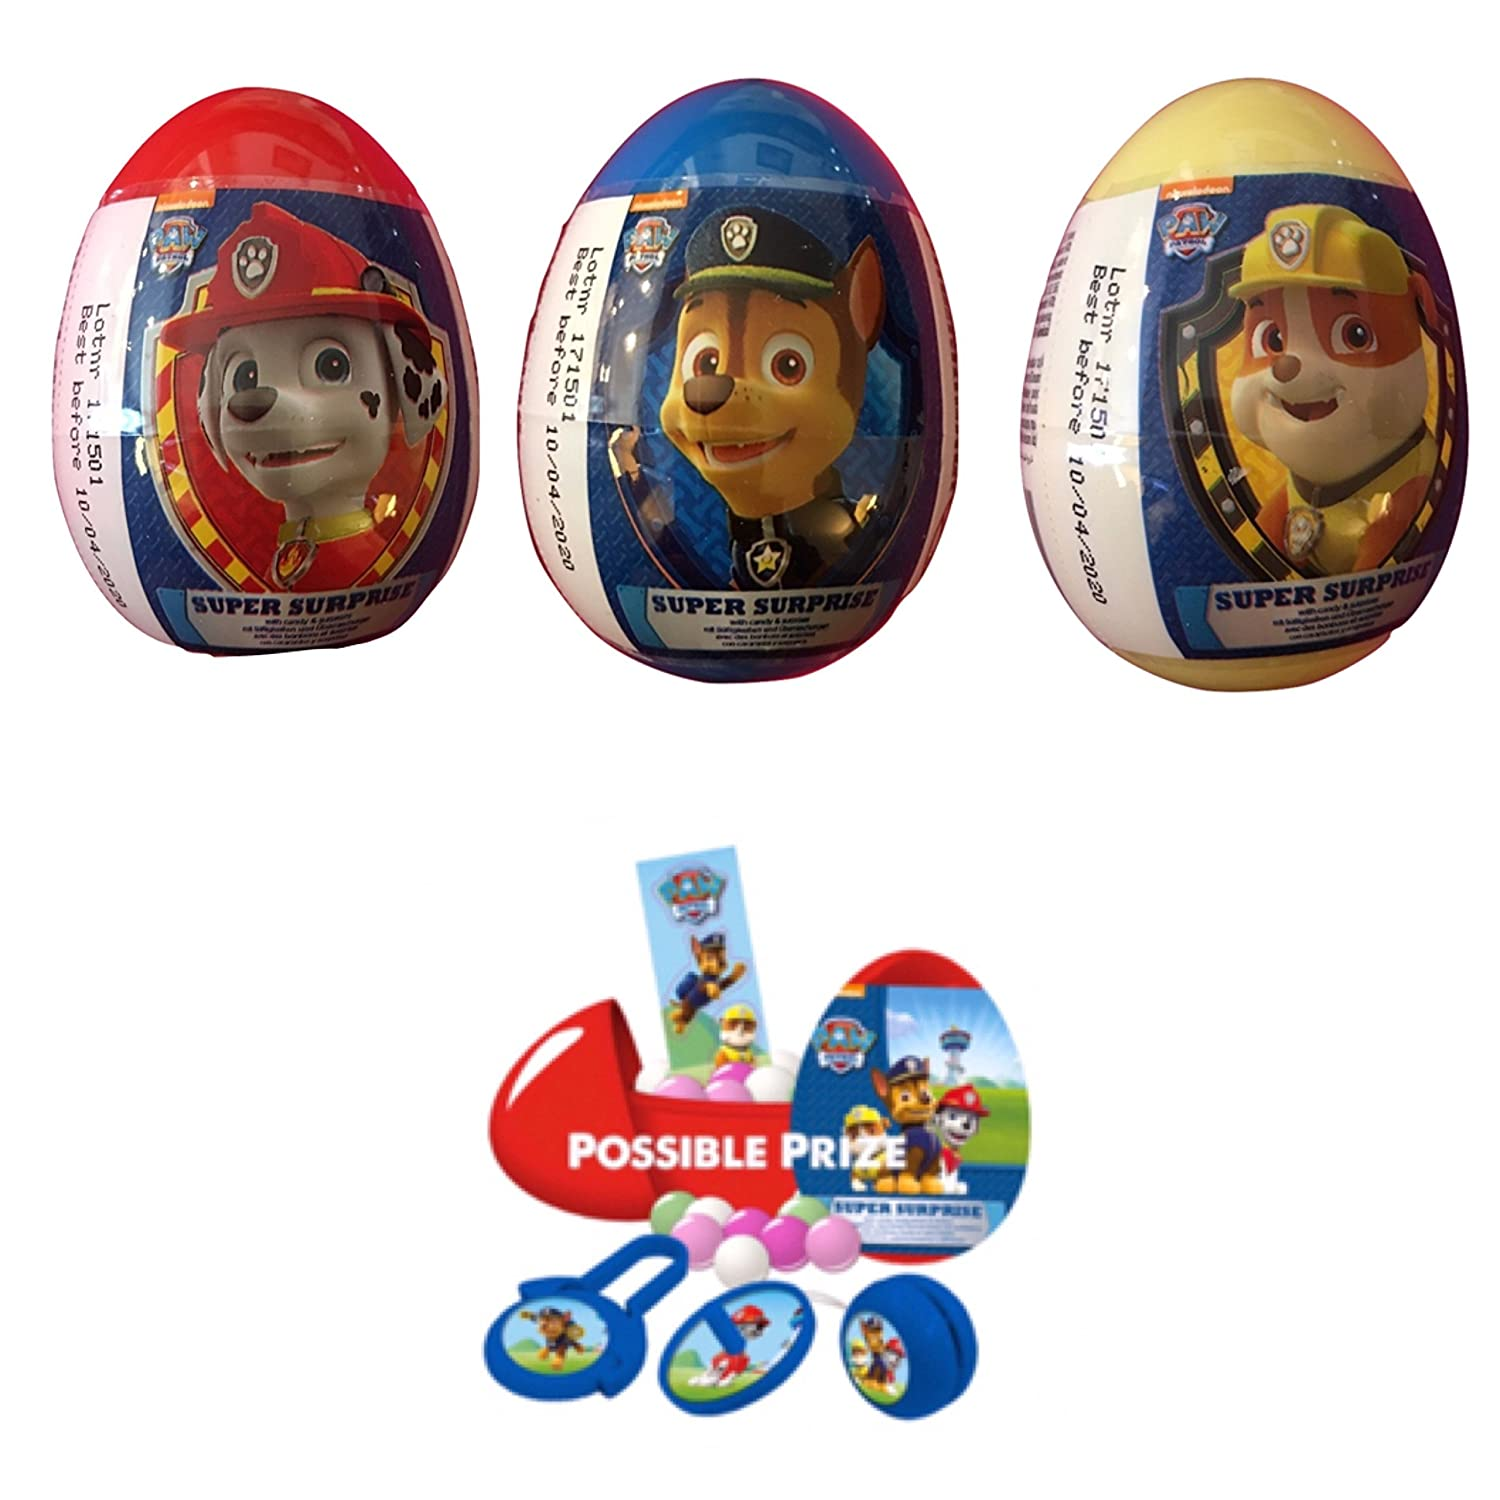 Amazon.com: 3 Paw patrol plastic surprise eggs with 2 single figures.: Toys & Games